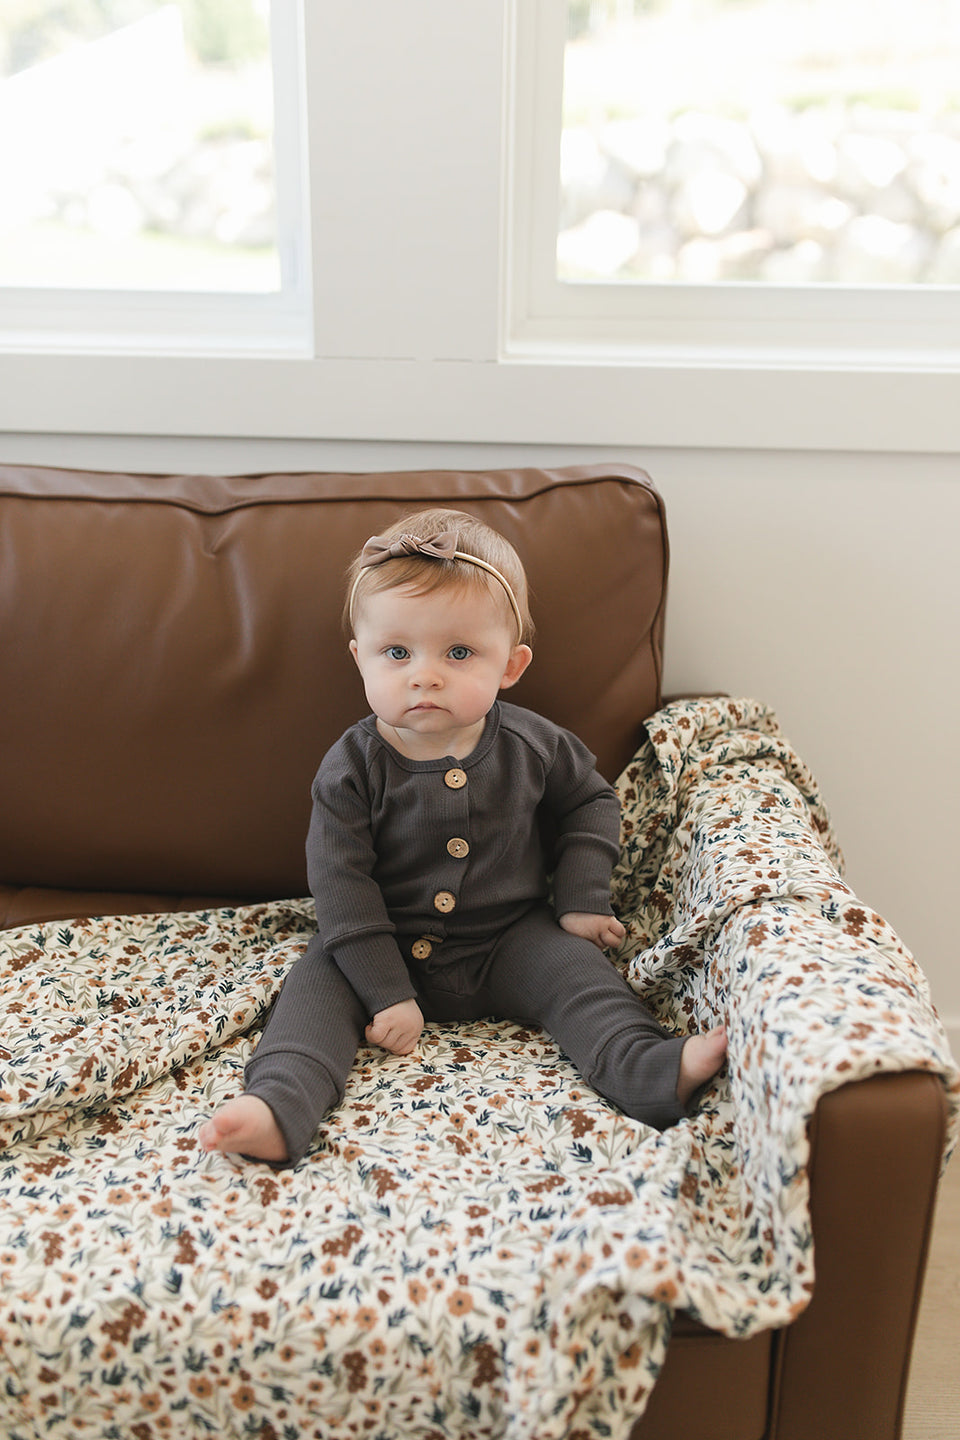 Baby Wearing Dusty Charcoal Romper Sitting on a Leather Sofa with Floral Swaddle